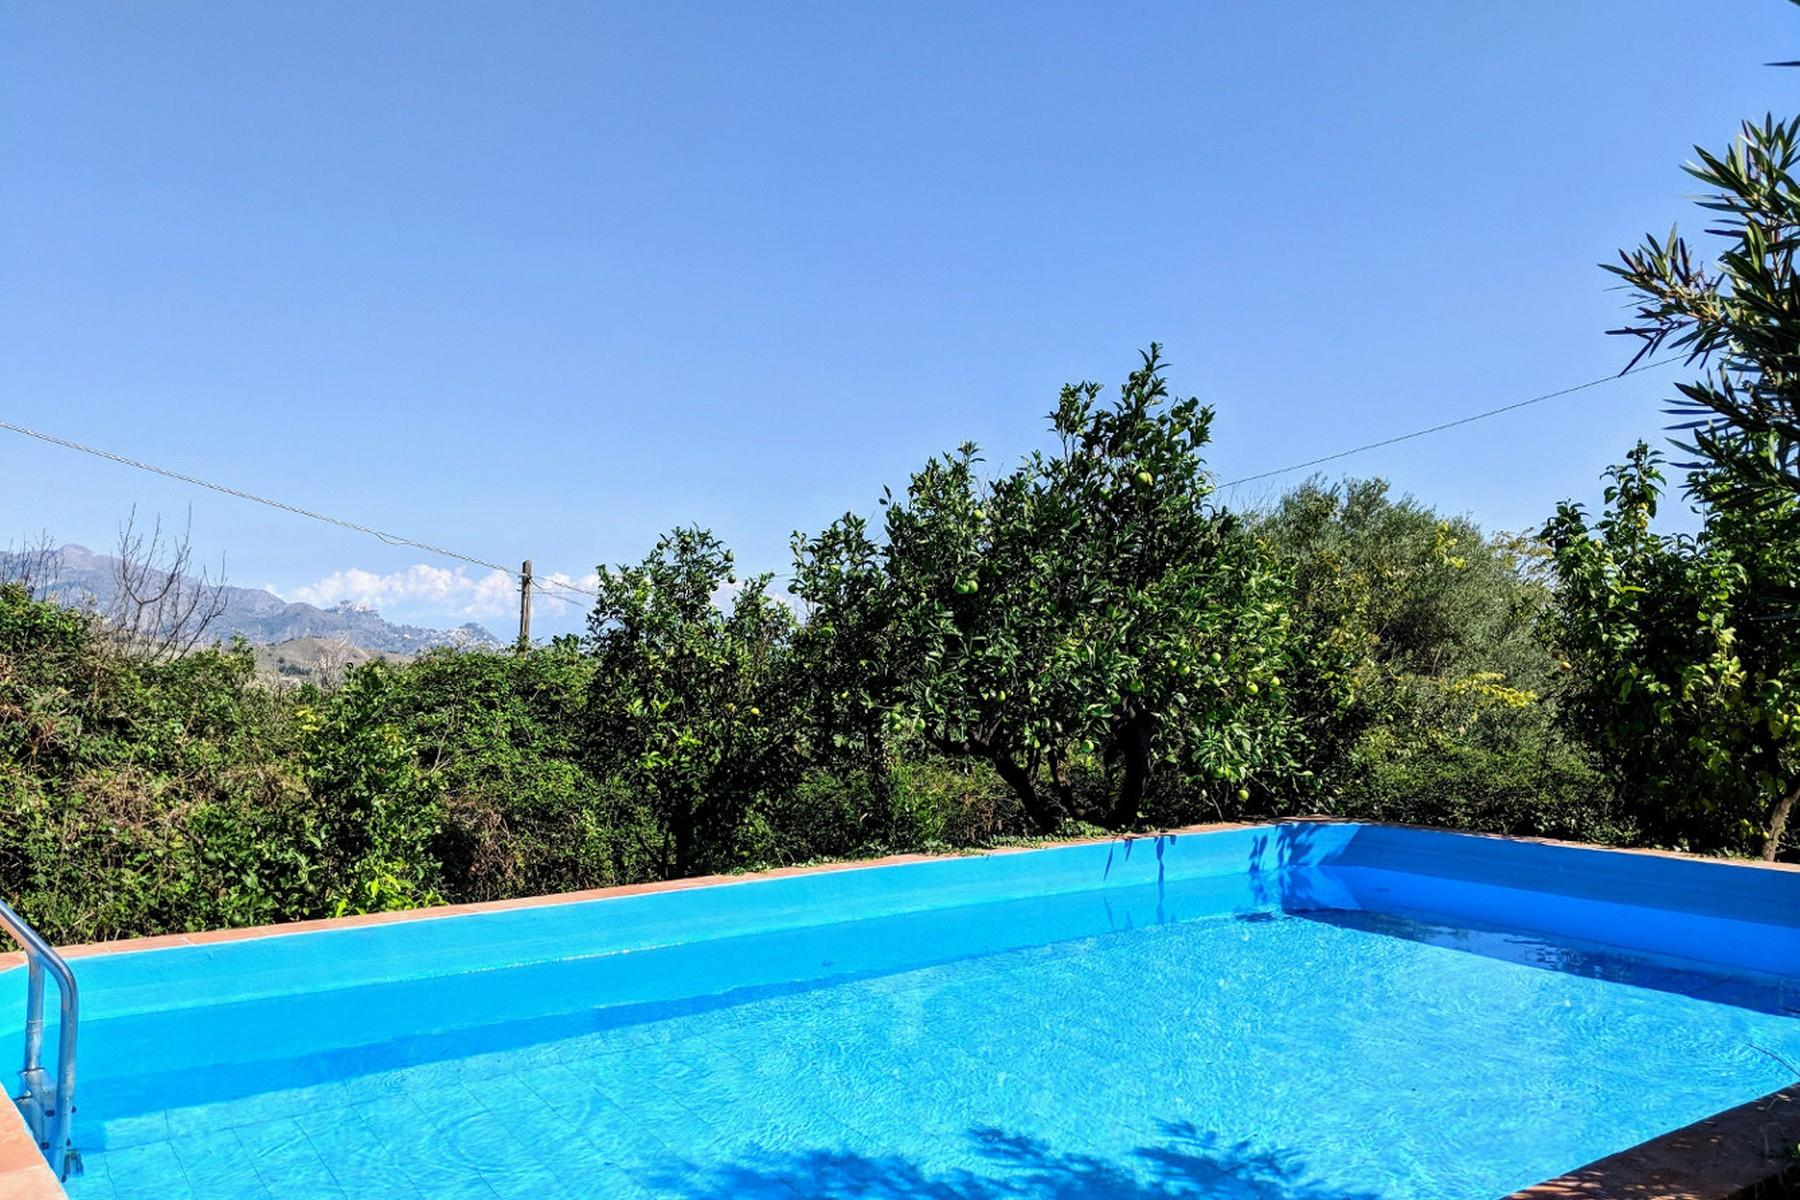 Detached villa with stunning views of Taormina, the sea and Mount Etna - 24